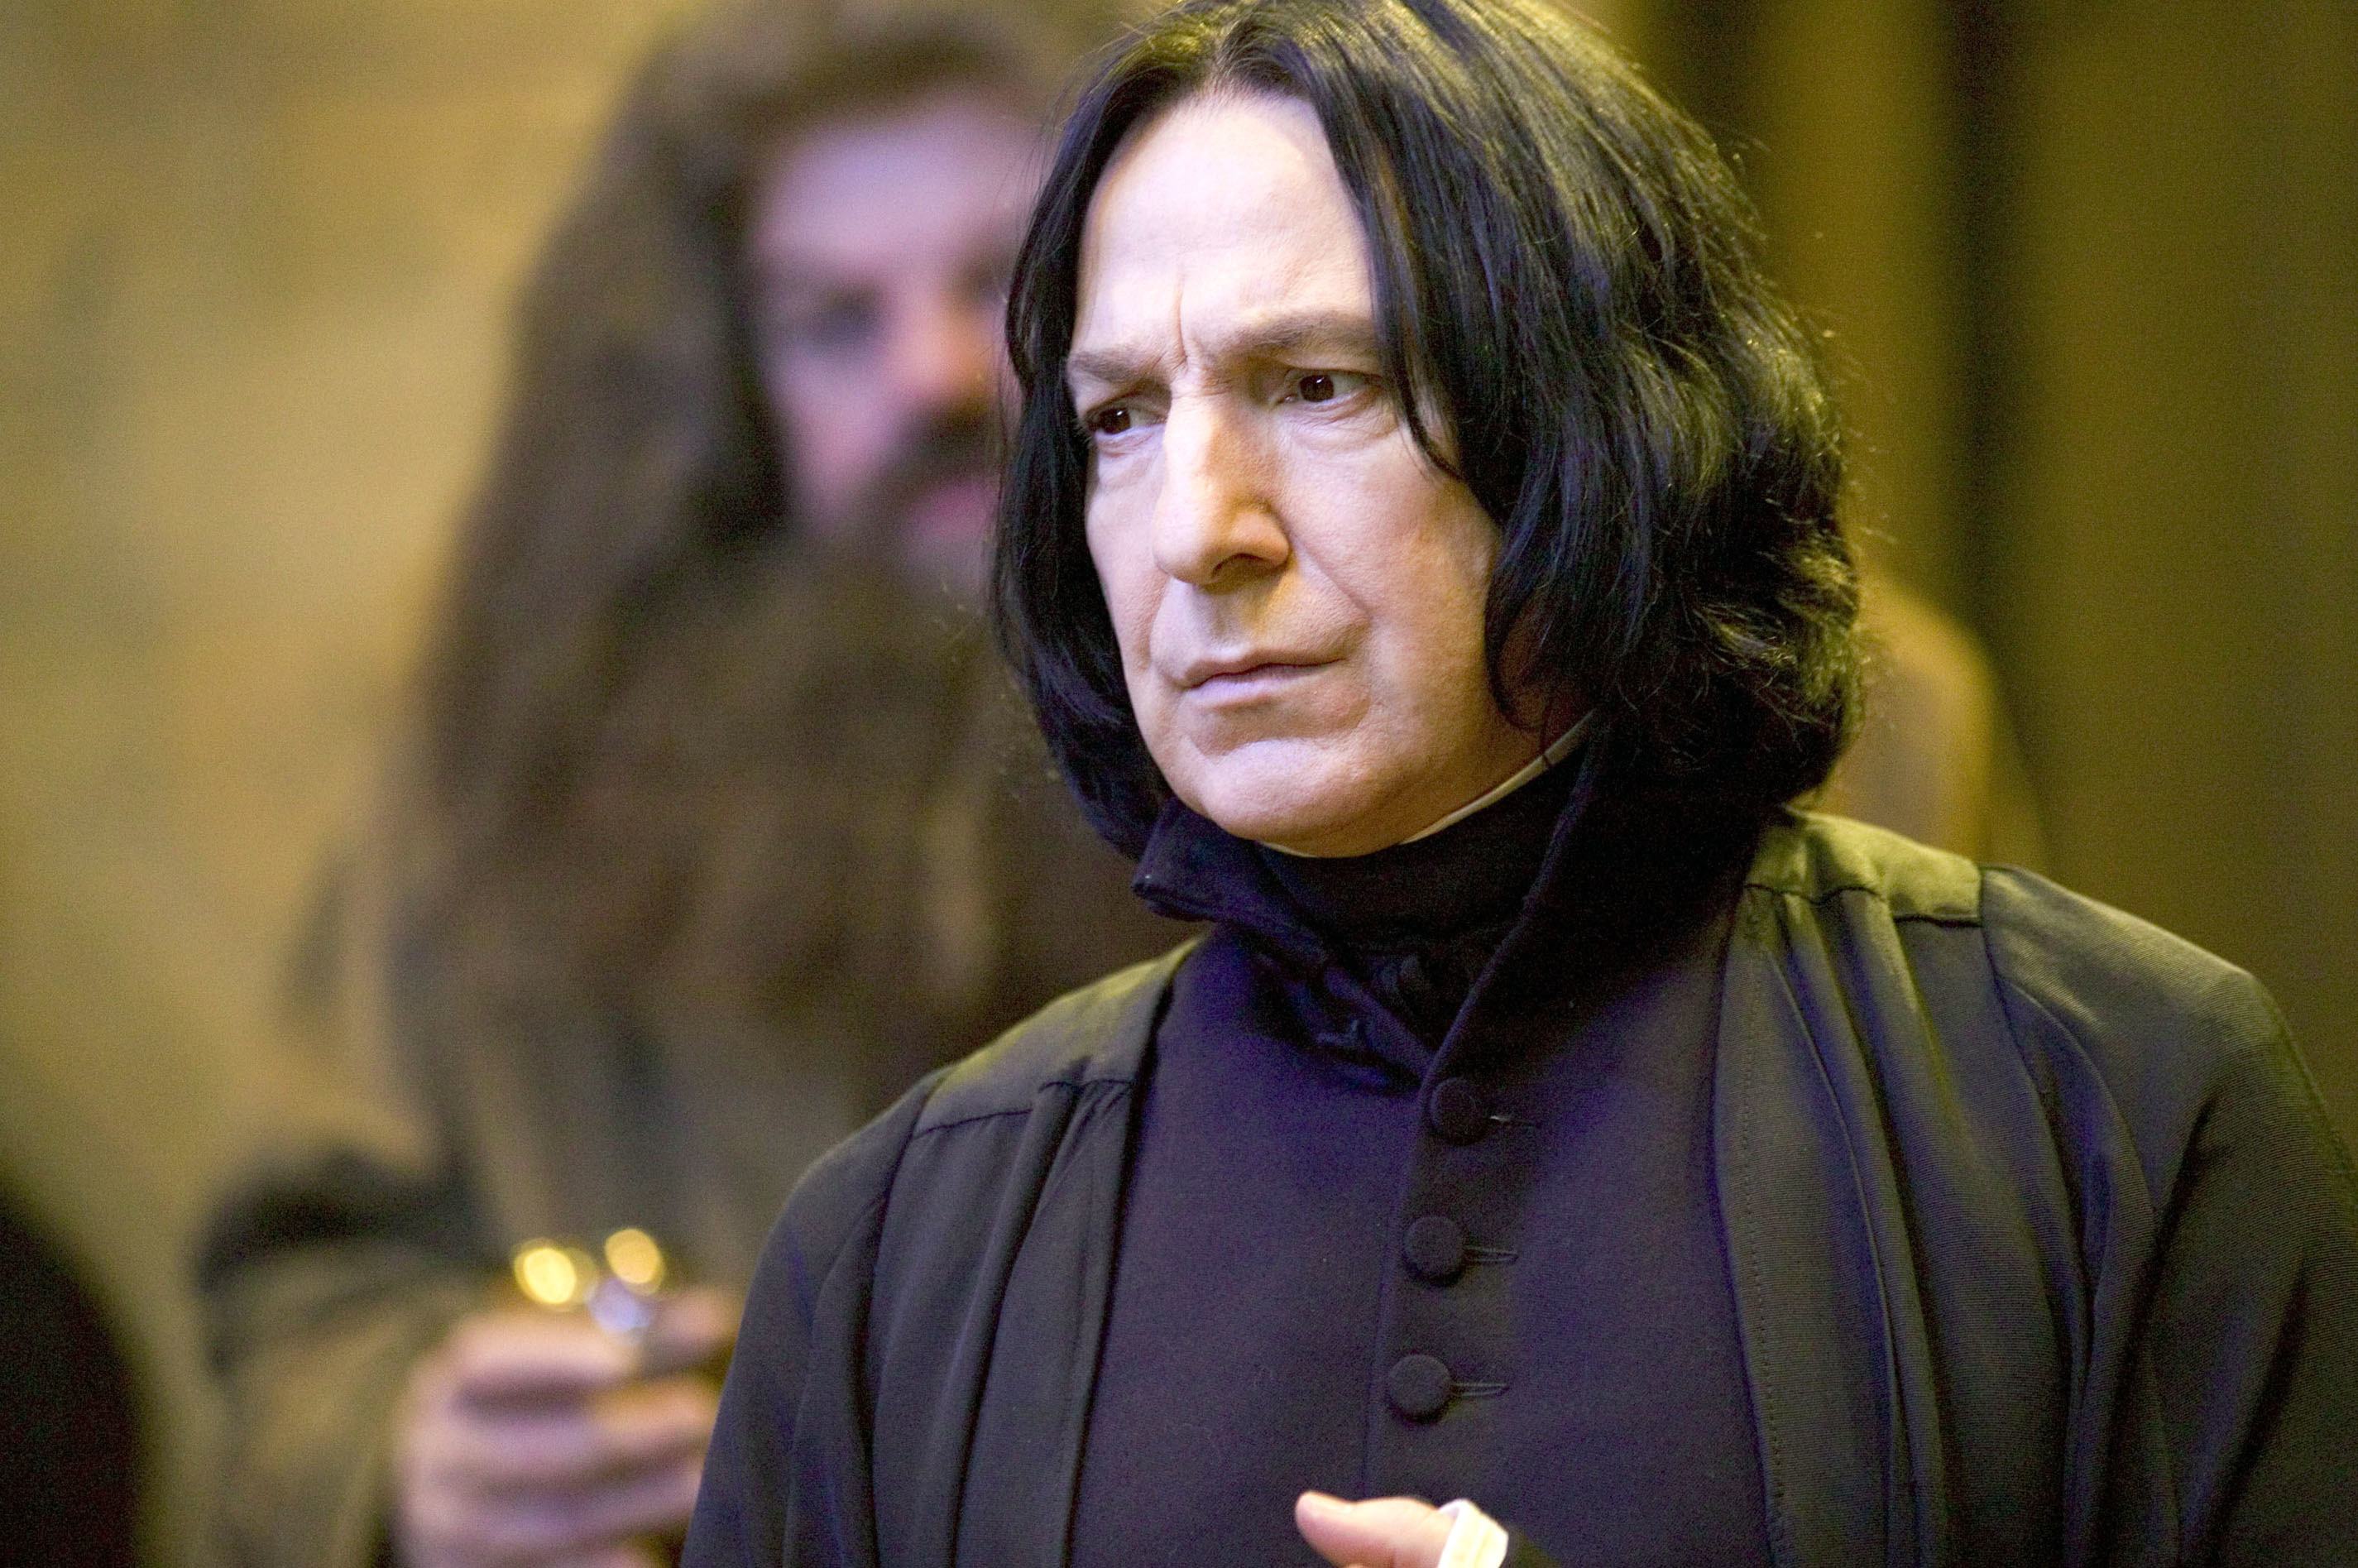 Severus snape looking serious in the movie for harry potter